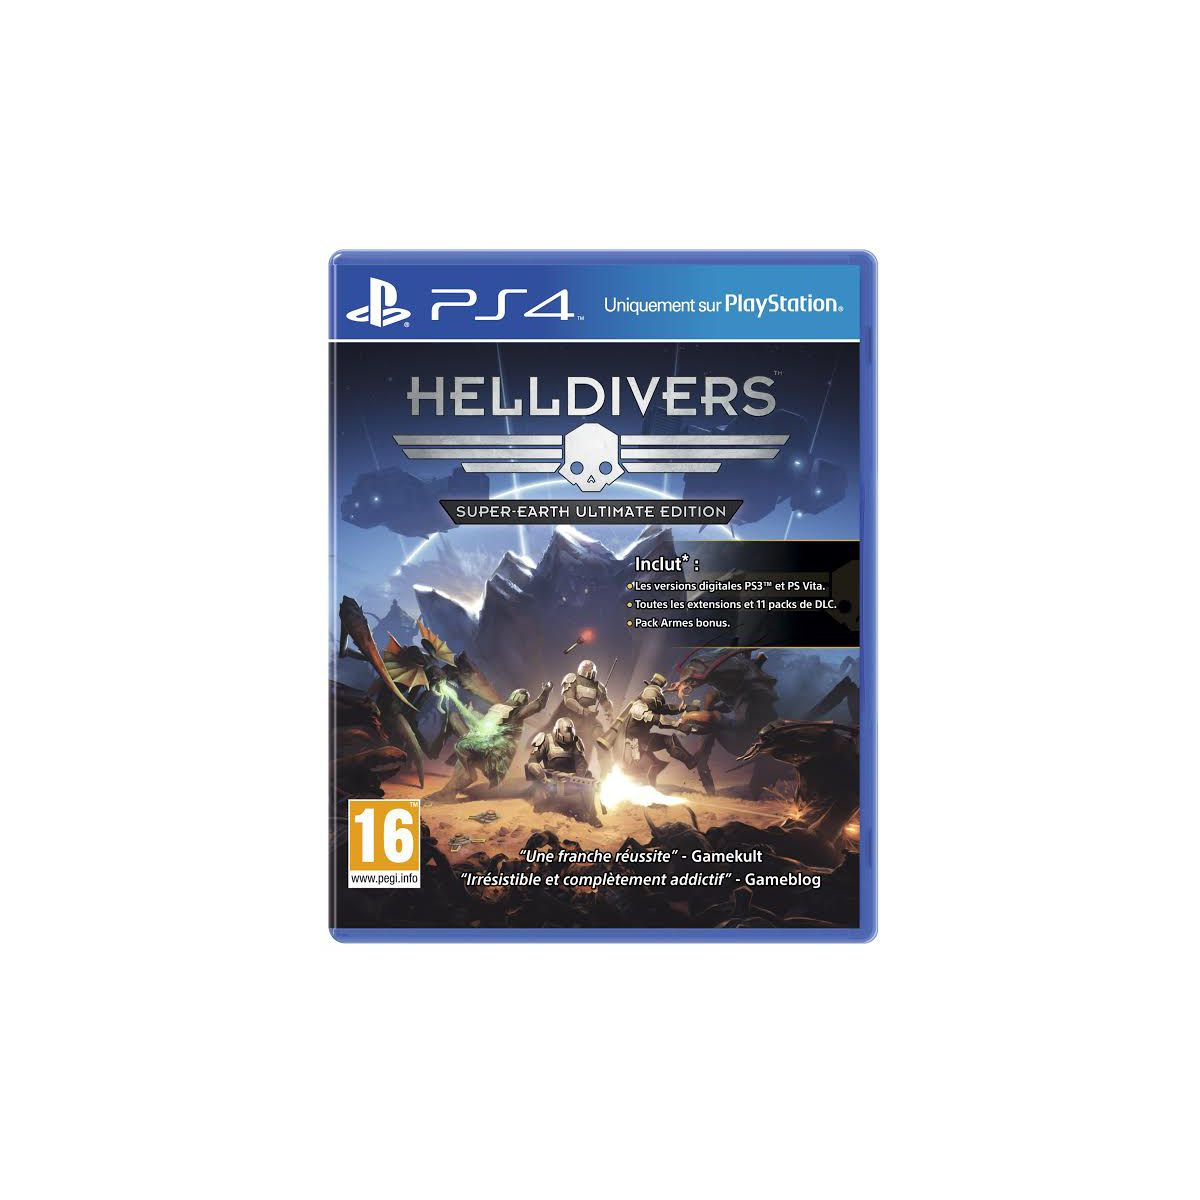 Jeu ps4 sony helldivers : super-earth ultimate edition (photo)